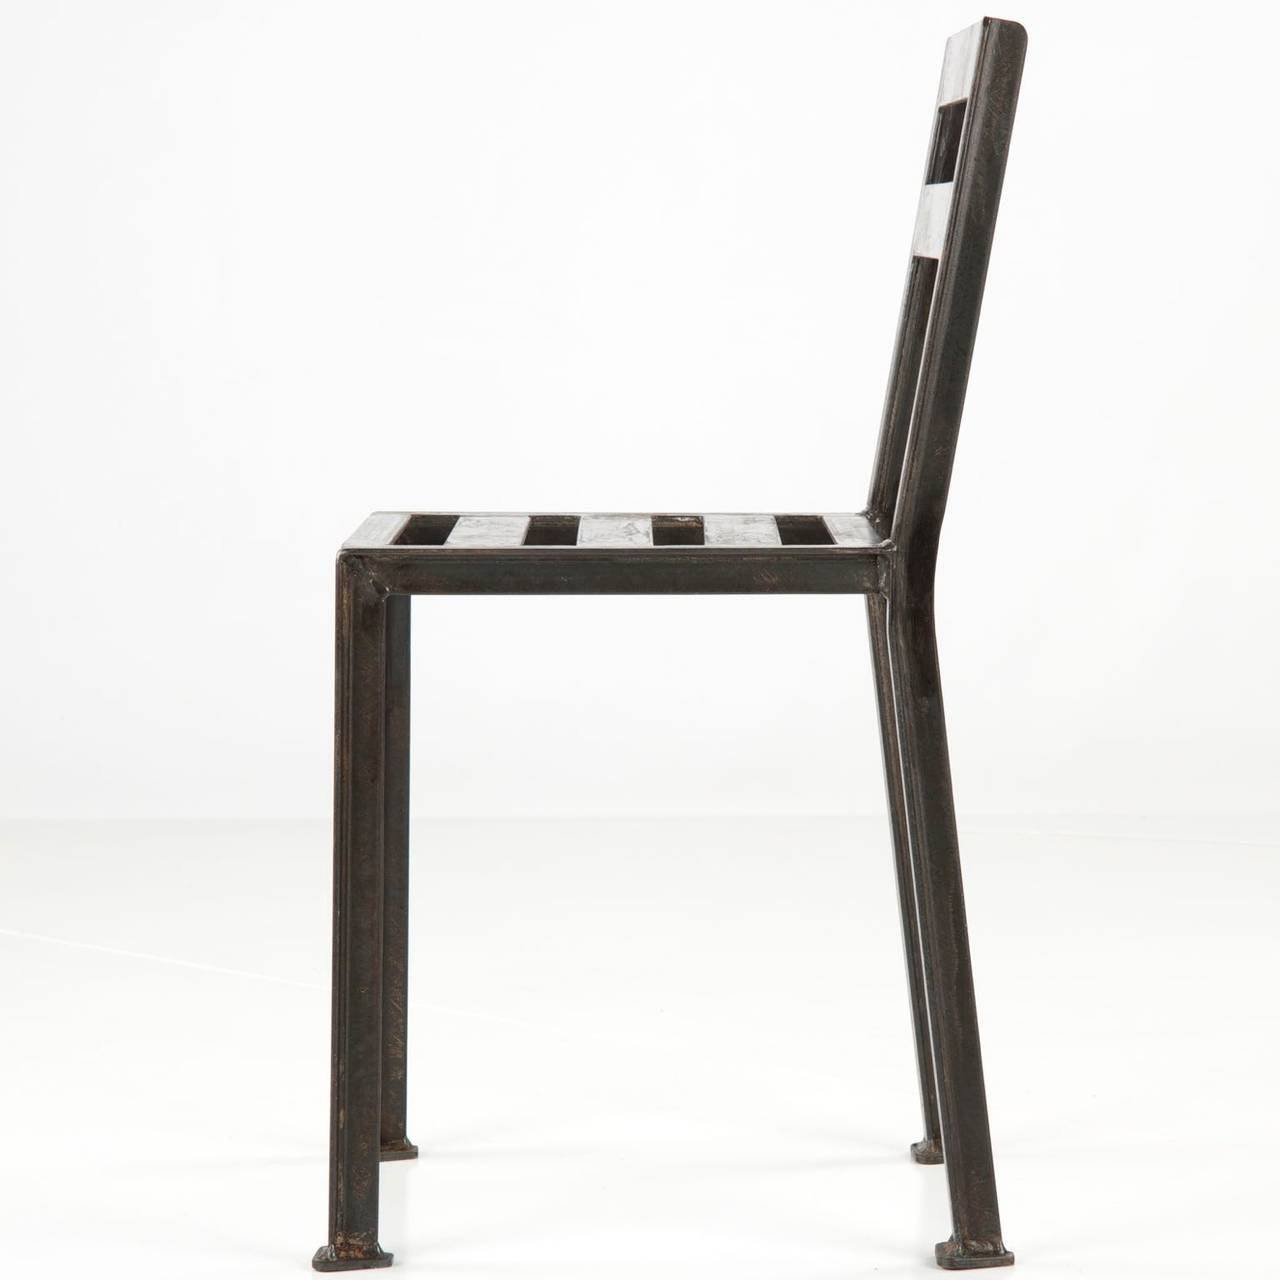 Modern industrial furniture purely industrial modern - French Industrial Style Modern Welded And Patinated Side